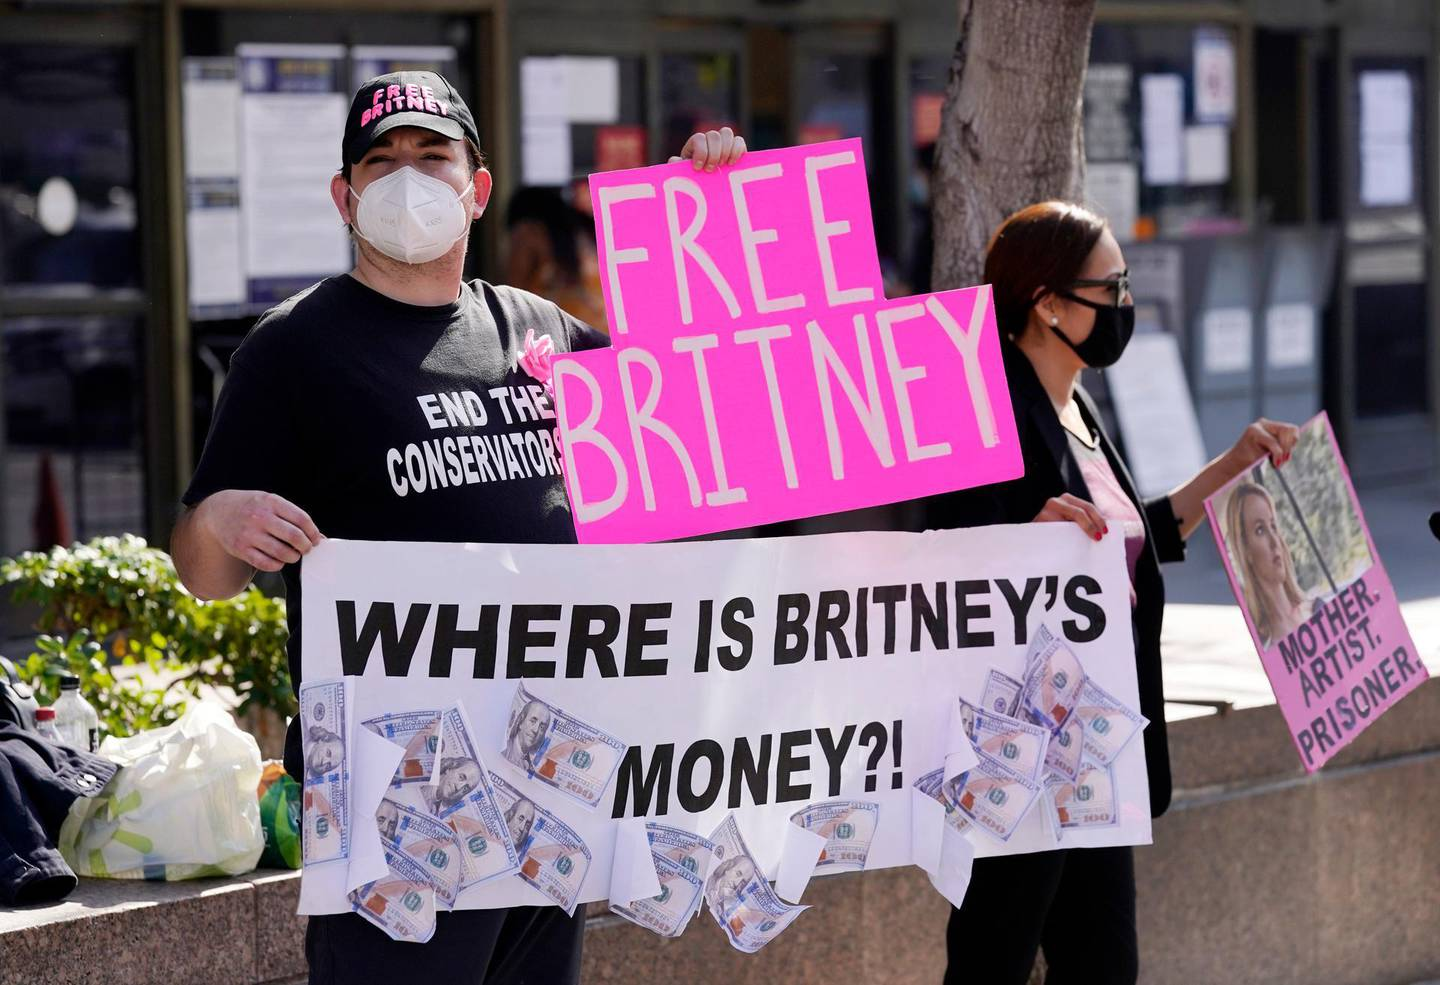 Britney Spears supporters Dustin Strand, left, and Kiki Norberto, both of Phoenix, hold signs outside a court hearing concerning the pop singer's conservatorship at the Stanley Mosk Courthouse, Thursday, Feb. 11, 2021, in Los Angeles. (AP Photo/Chris Pizzello)